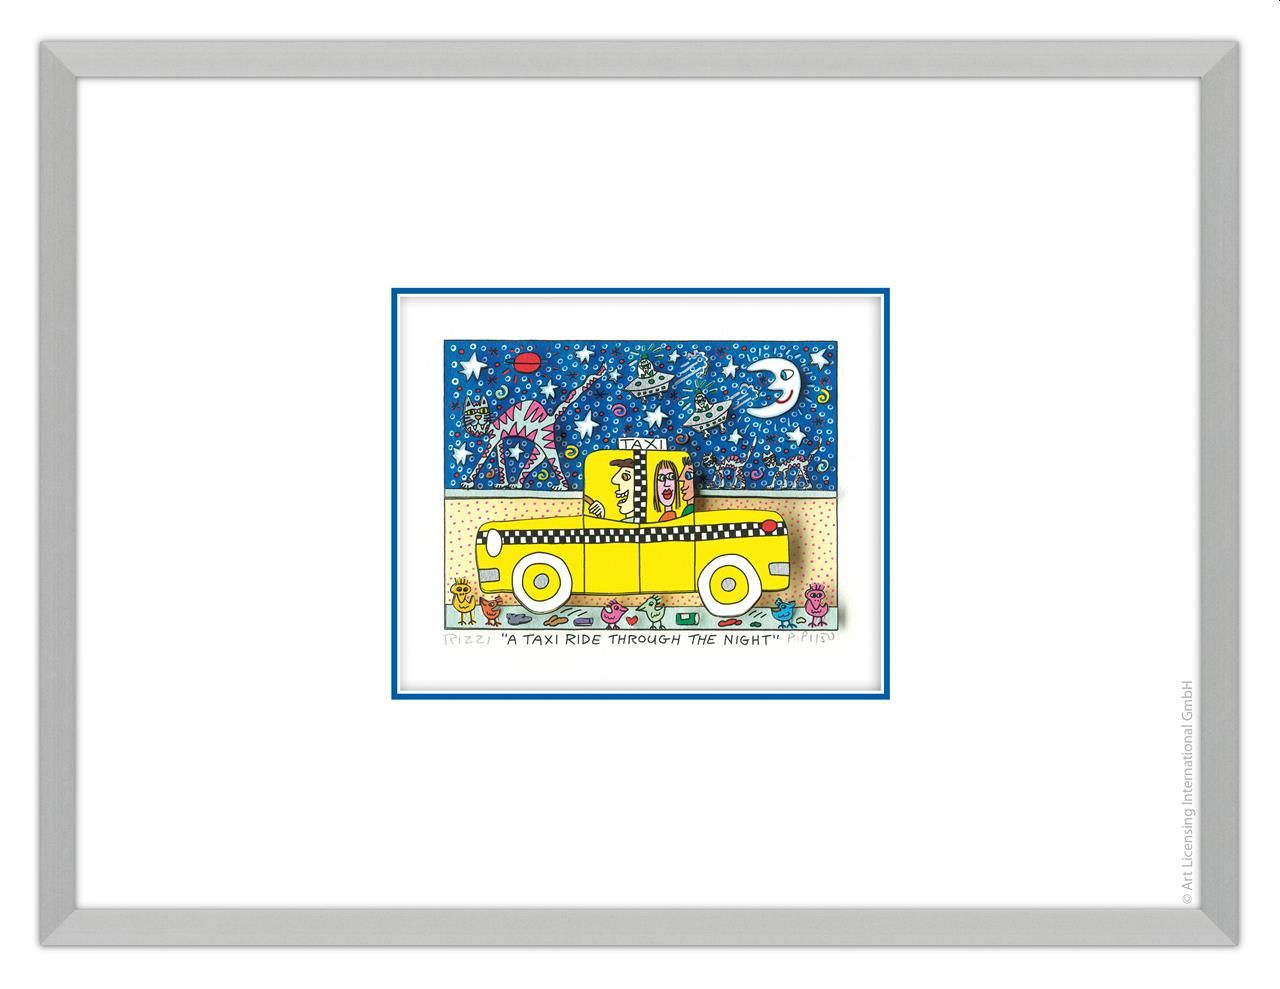 James Rizzi - A TAXI RIDE THROUGH THE NIGHT